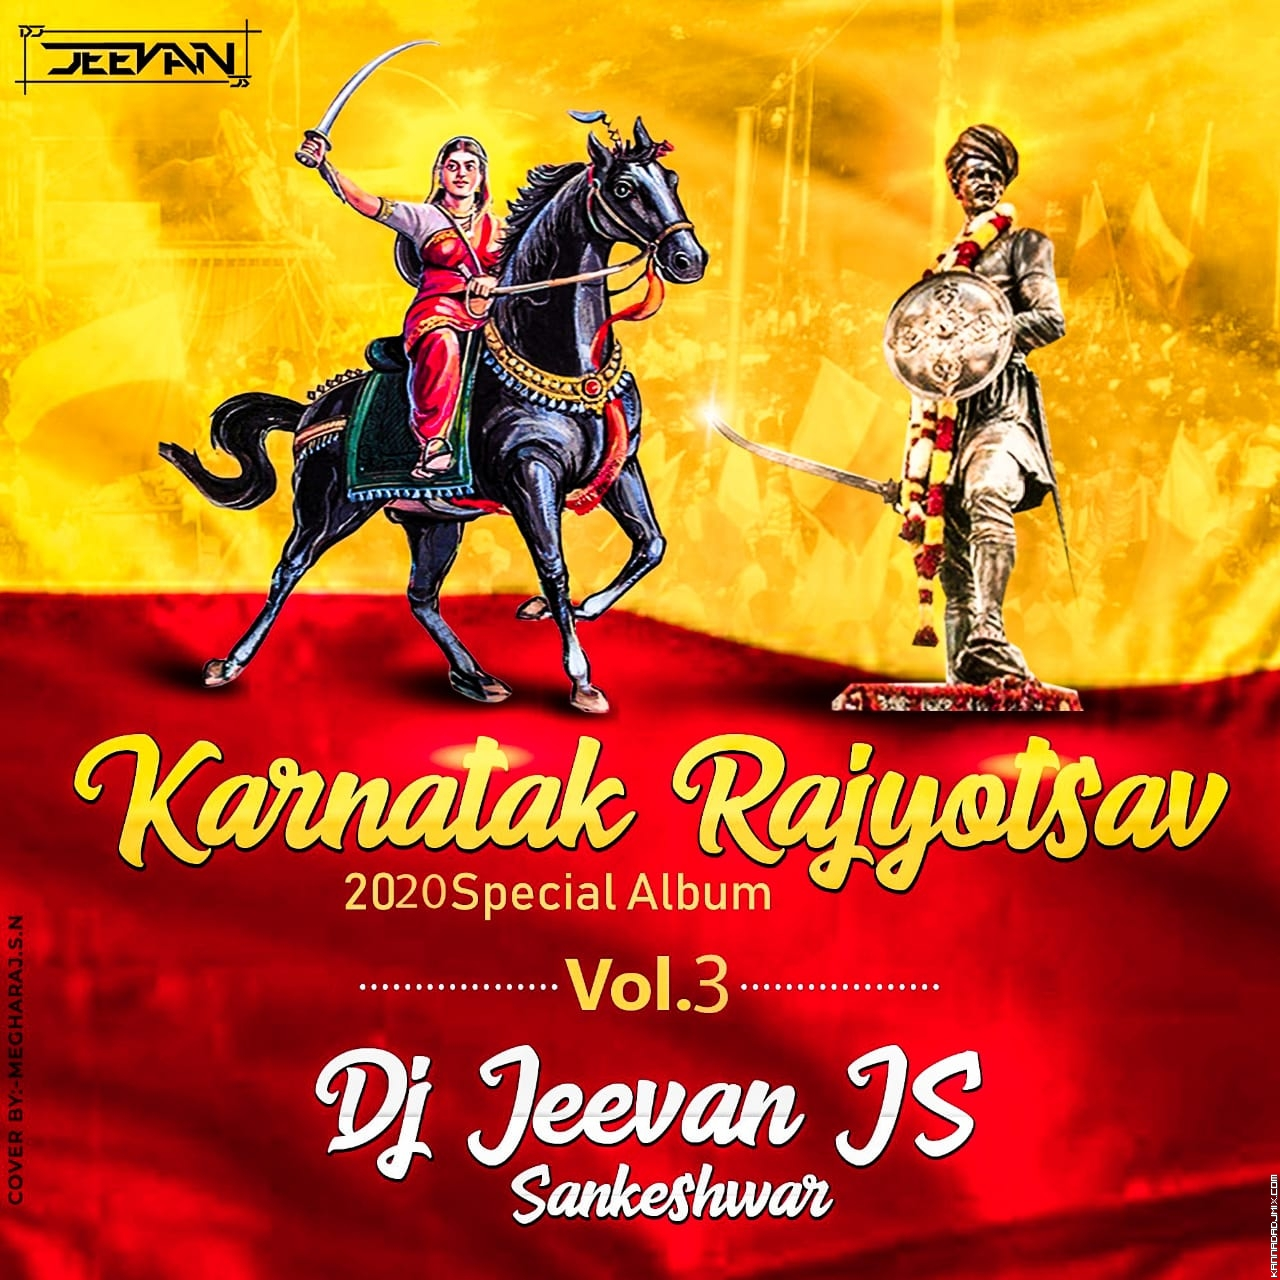 karunnde Edm Drop2020 mix by dj jeevan js sankeshwar.mp3